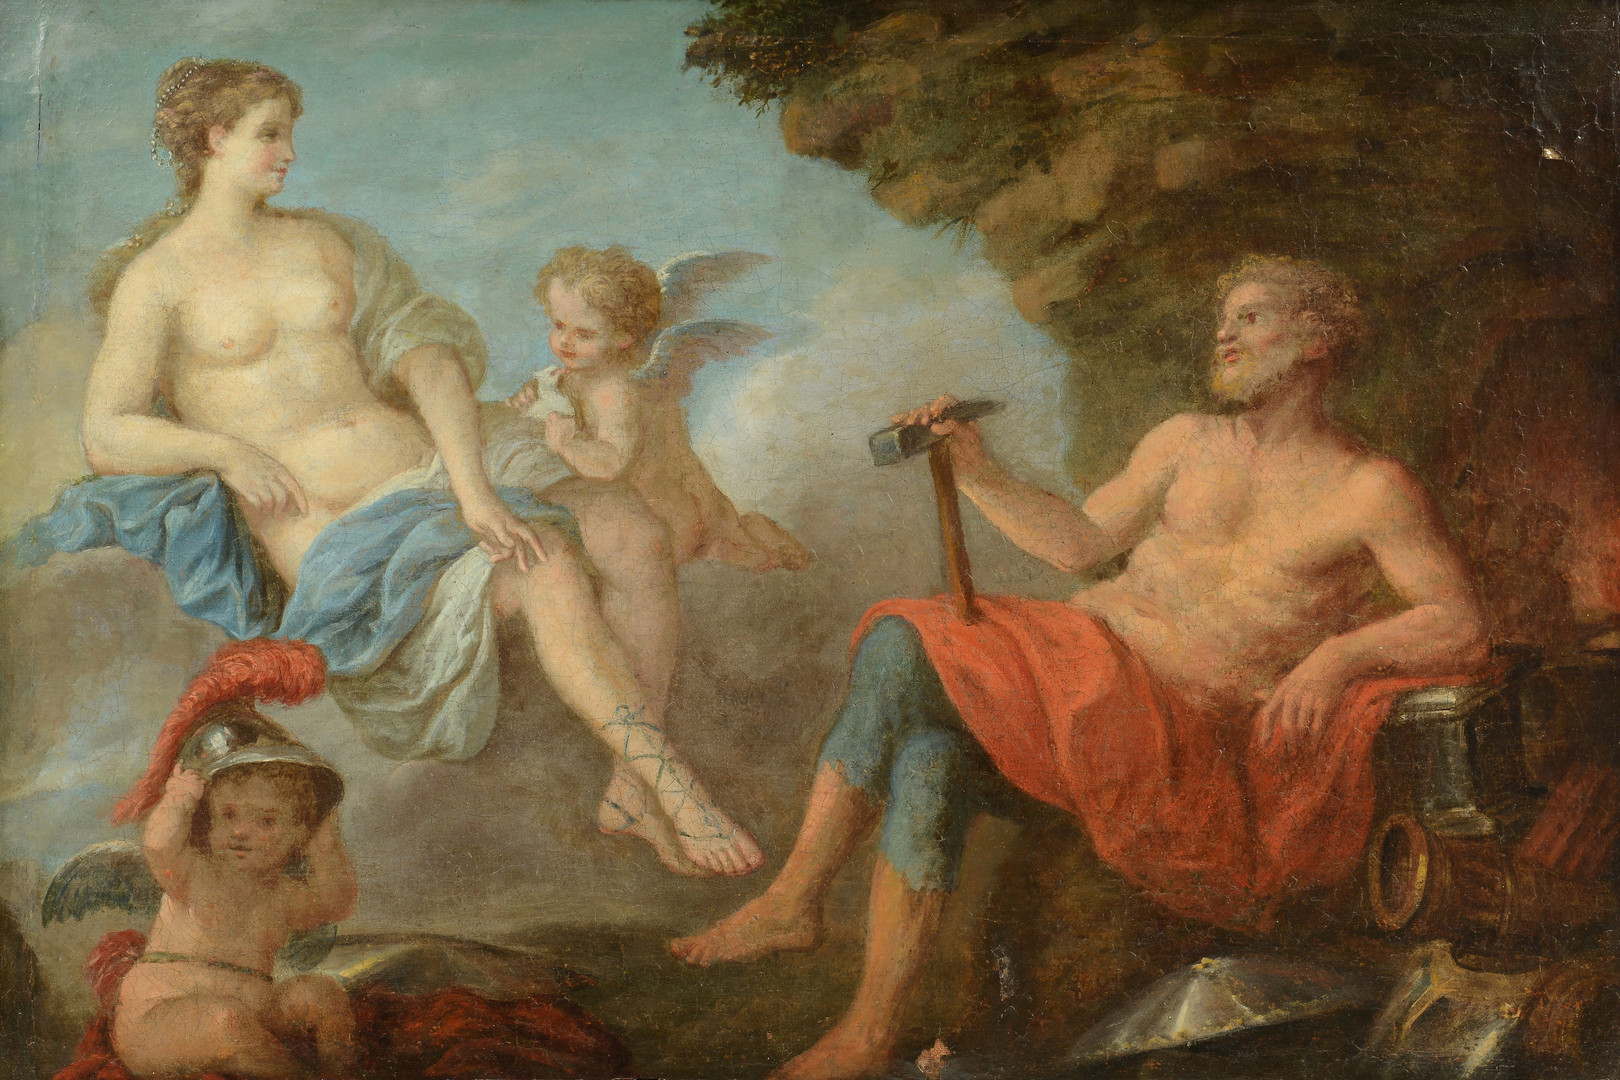 Lot 851: Attr. LaGrenee, Vulcan and Venus, oil on canvas